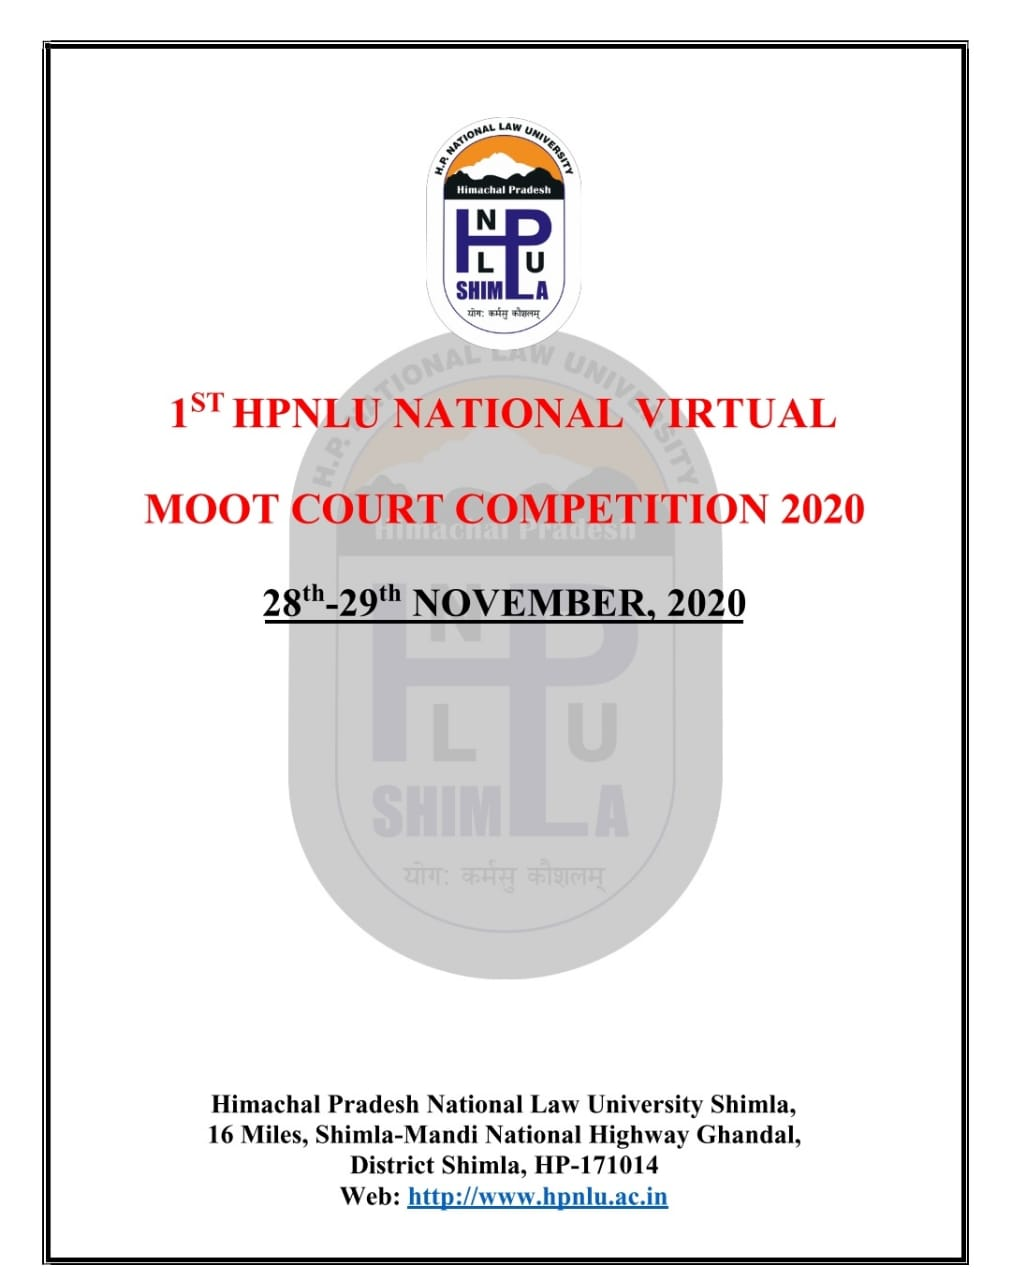 1ST HPNLU NATIONAL VIRTUAL MOOT COURT COMPETITION,2020